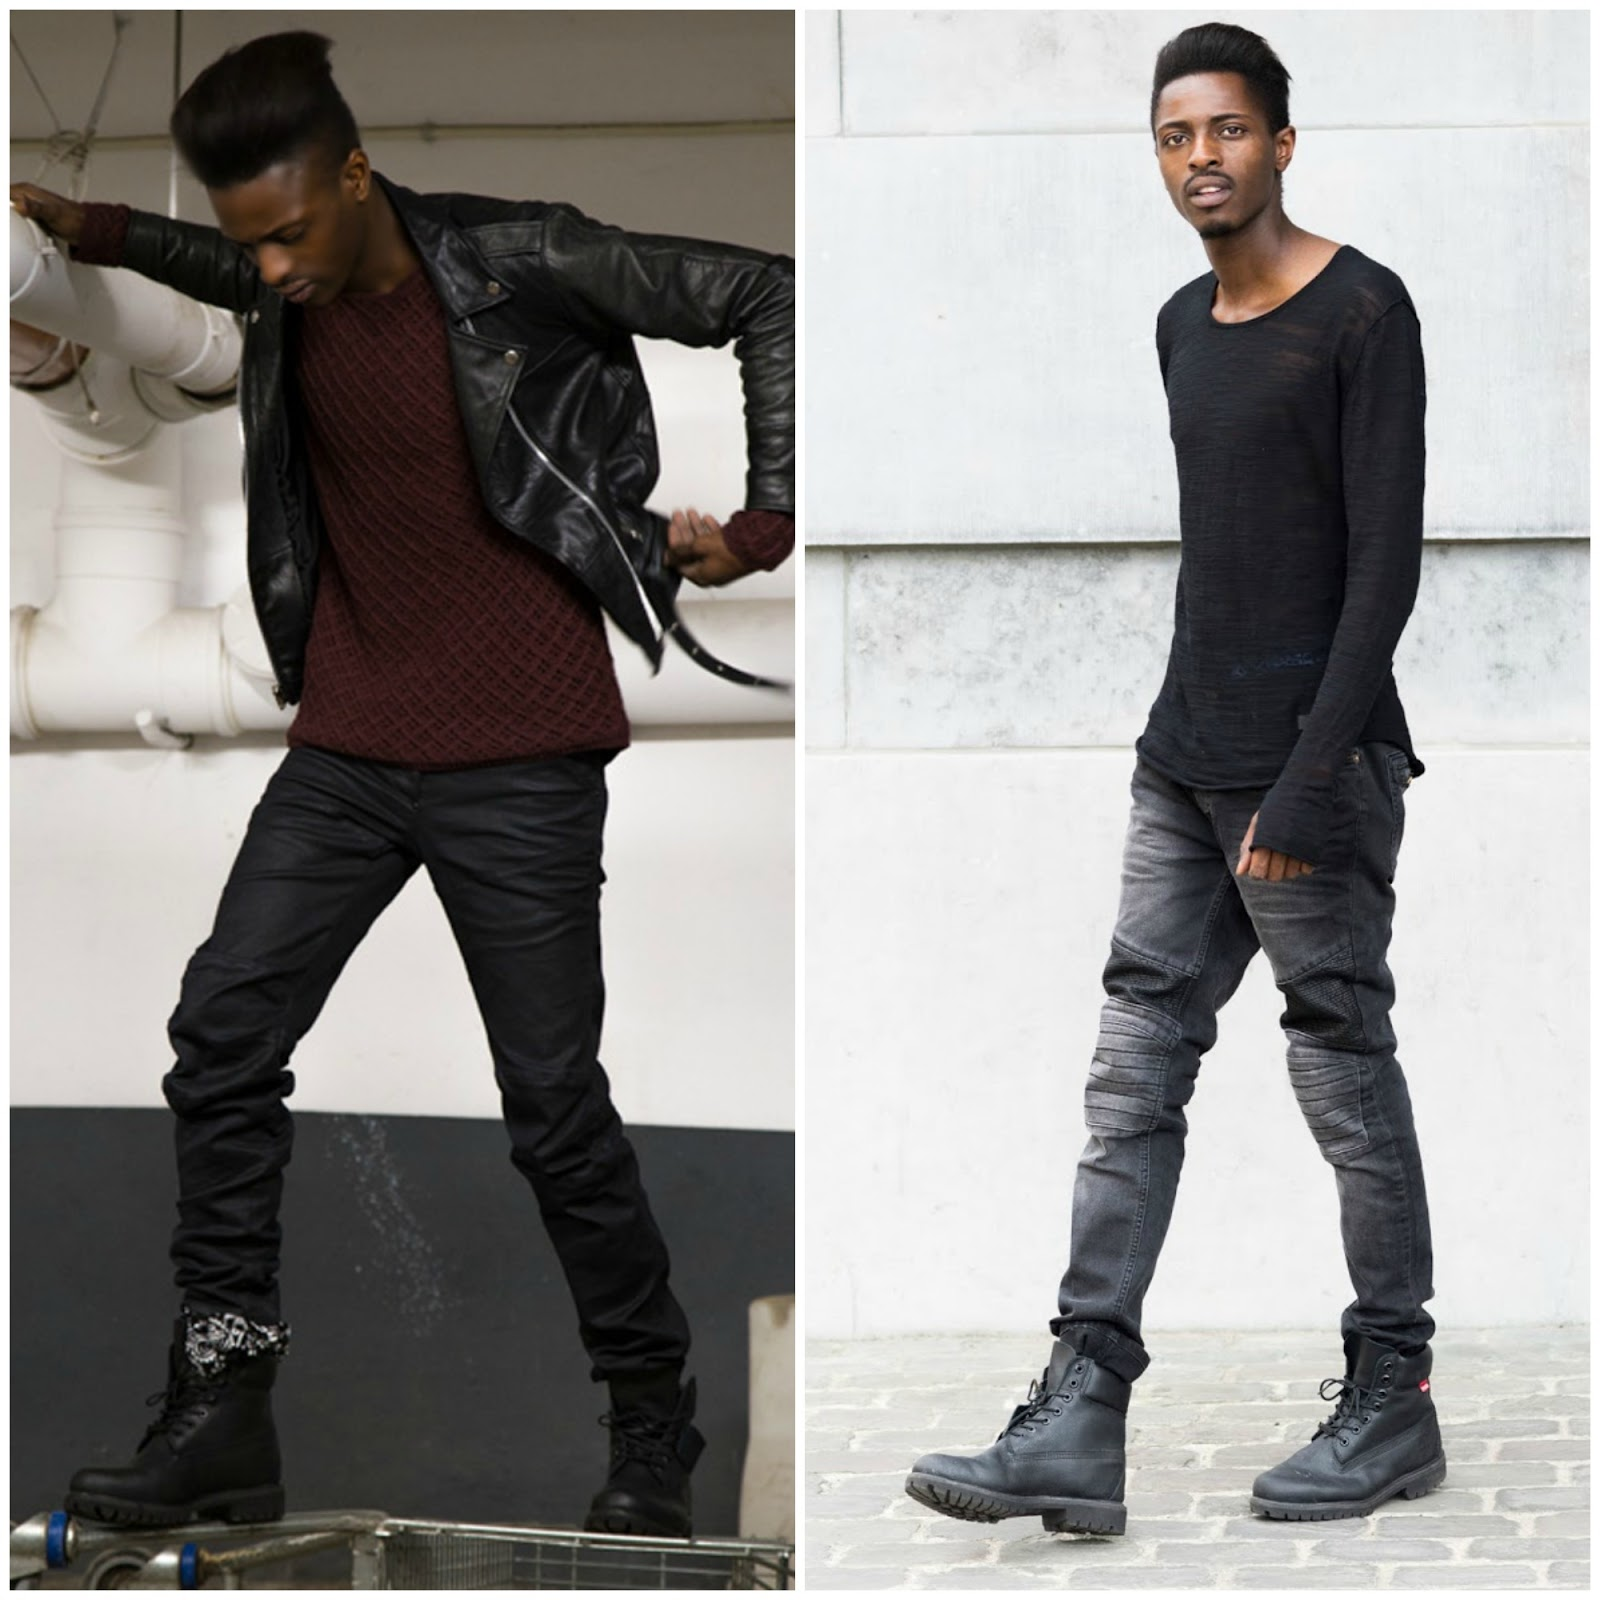 how to wear timberland boots : Edgy Black on Black Street Look with Black Timberland Boots